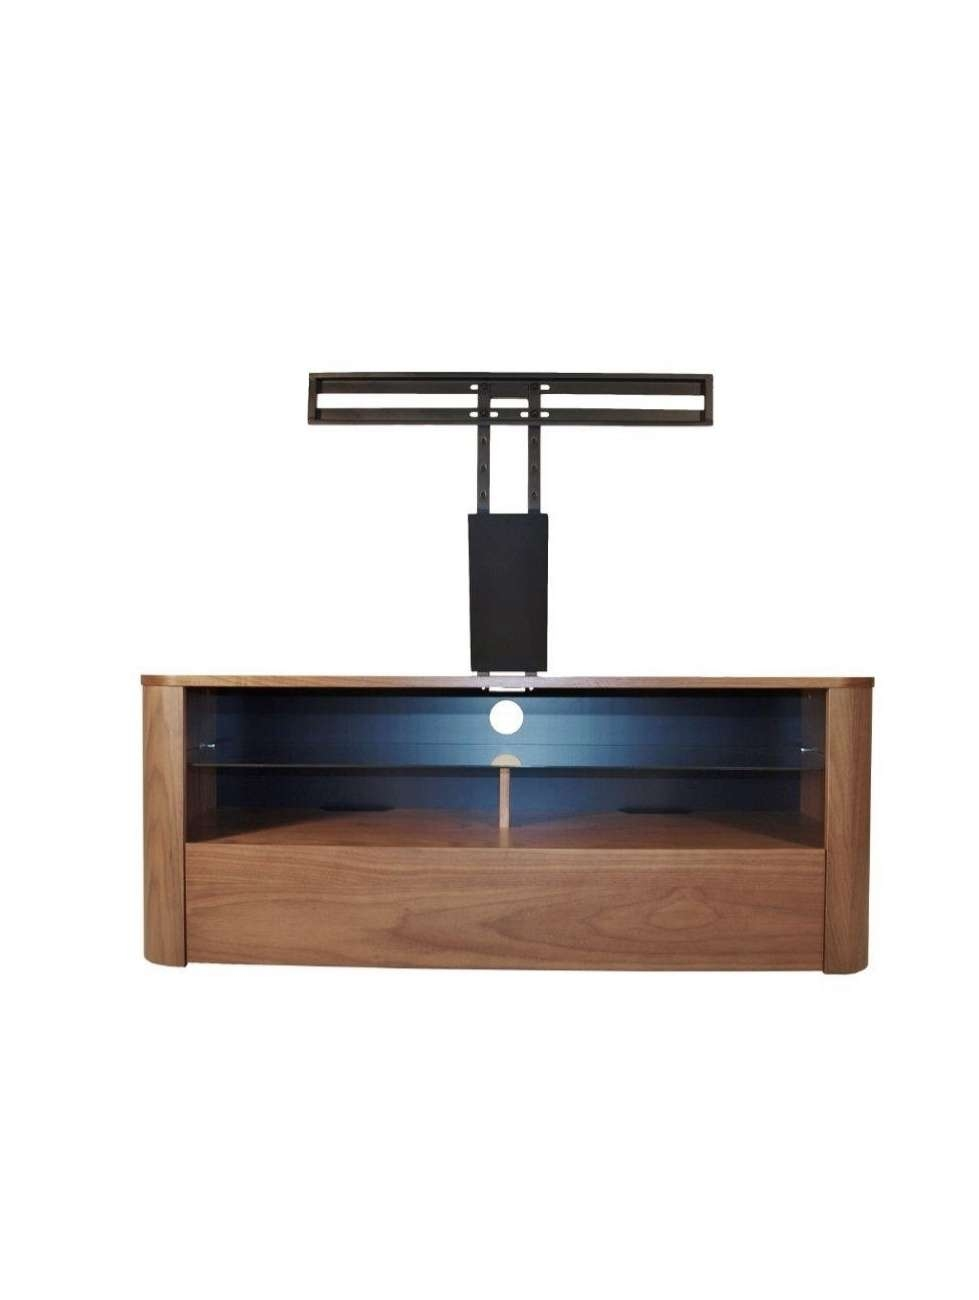 Alphason Hugo Tv Stand Adh1260 Wal Walnut With Bracket | 121 Tv Mounts Throughout Walnut Tv Cabinets (View 8 of 20)